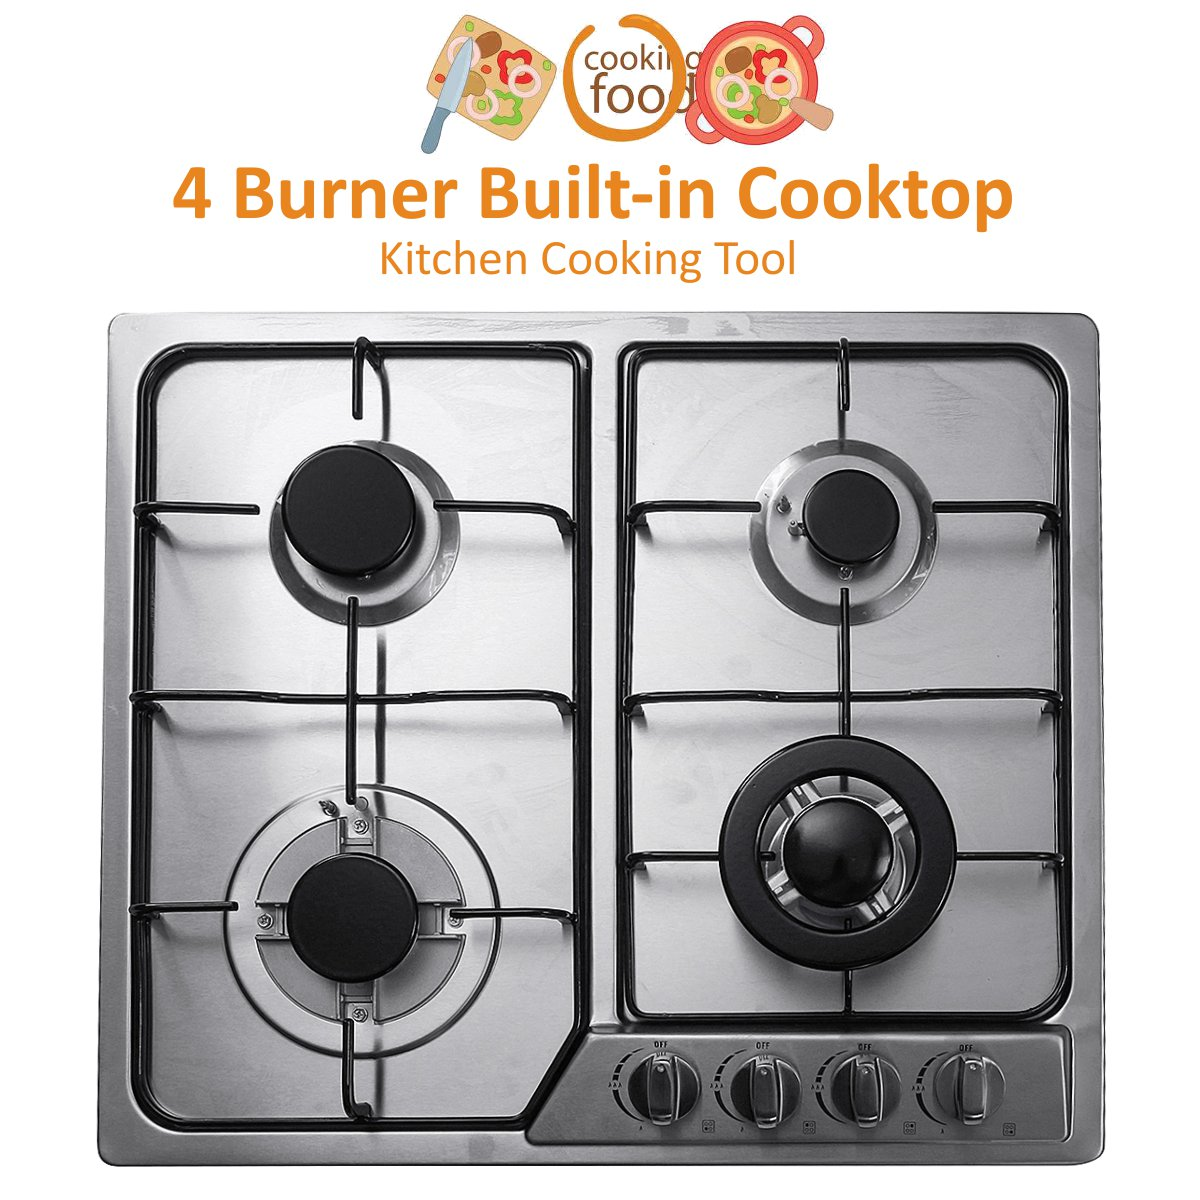 58x50cm 4 Burner Built-in Cooktop Stainless Steel Gas Stoves Natural Gas Hob Kitchen Cooking Appliance Cookware Gas Cooker